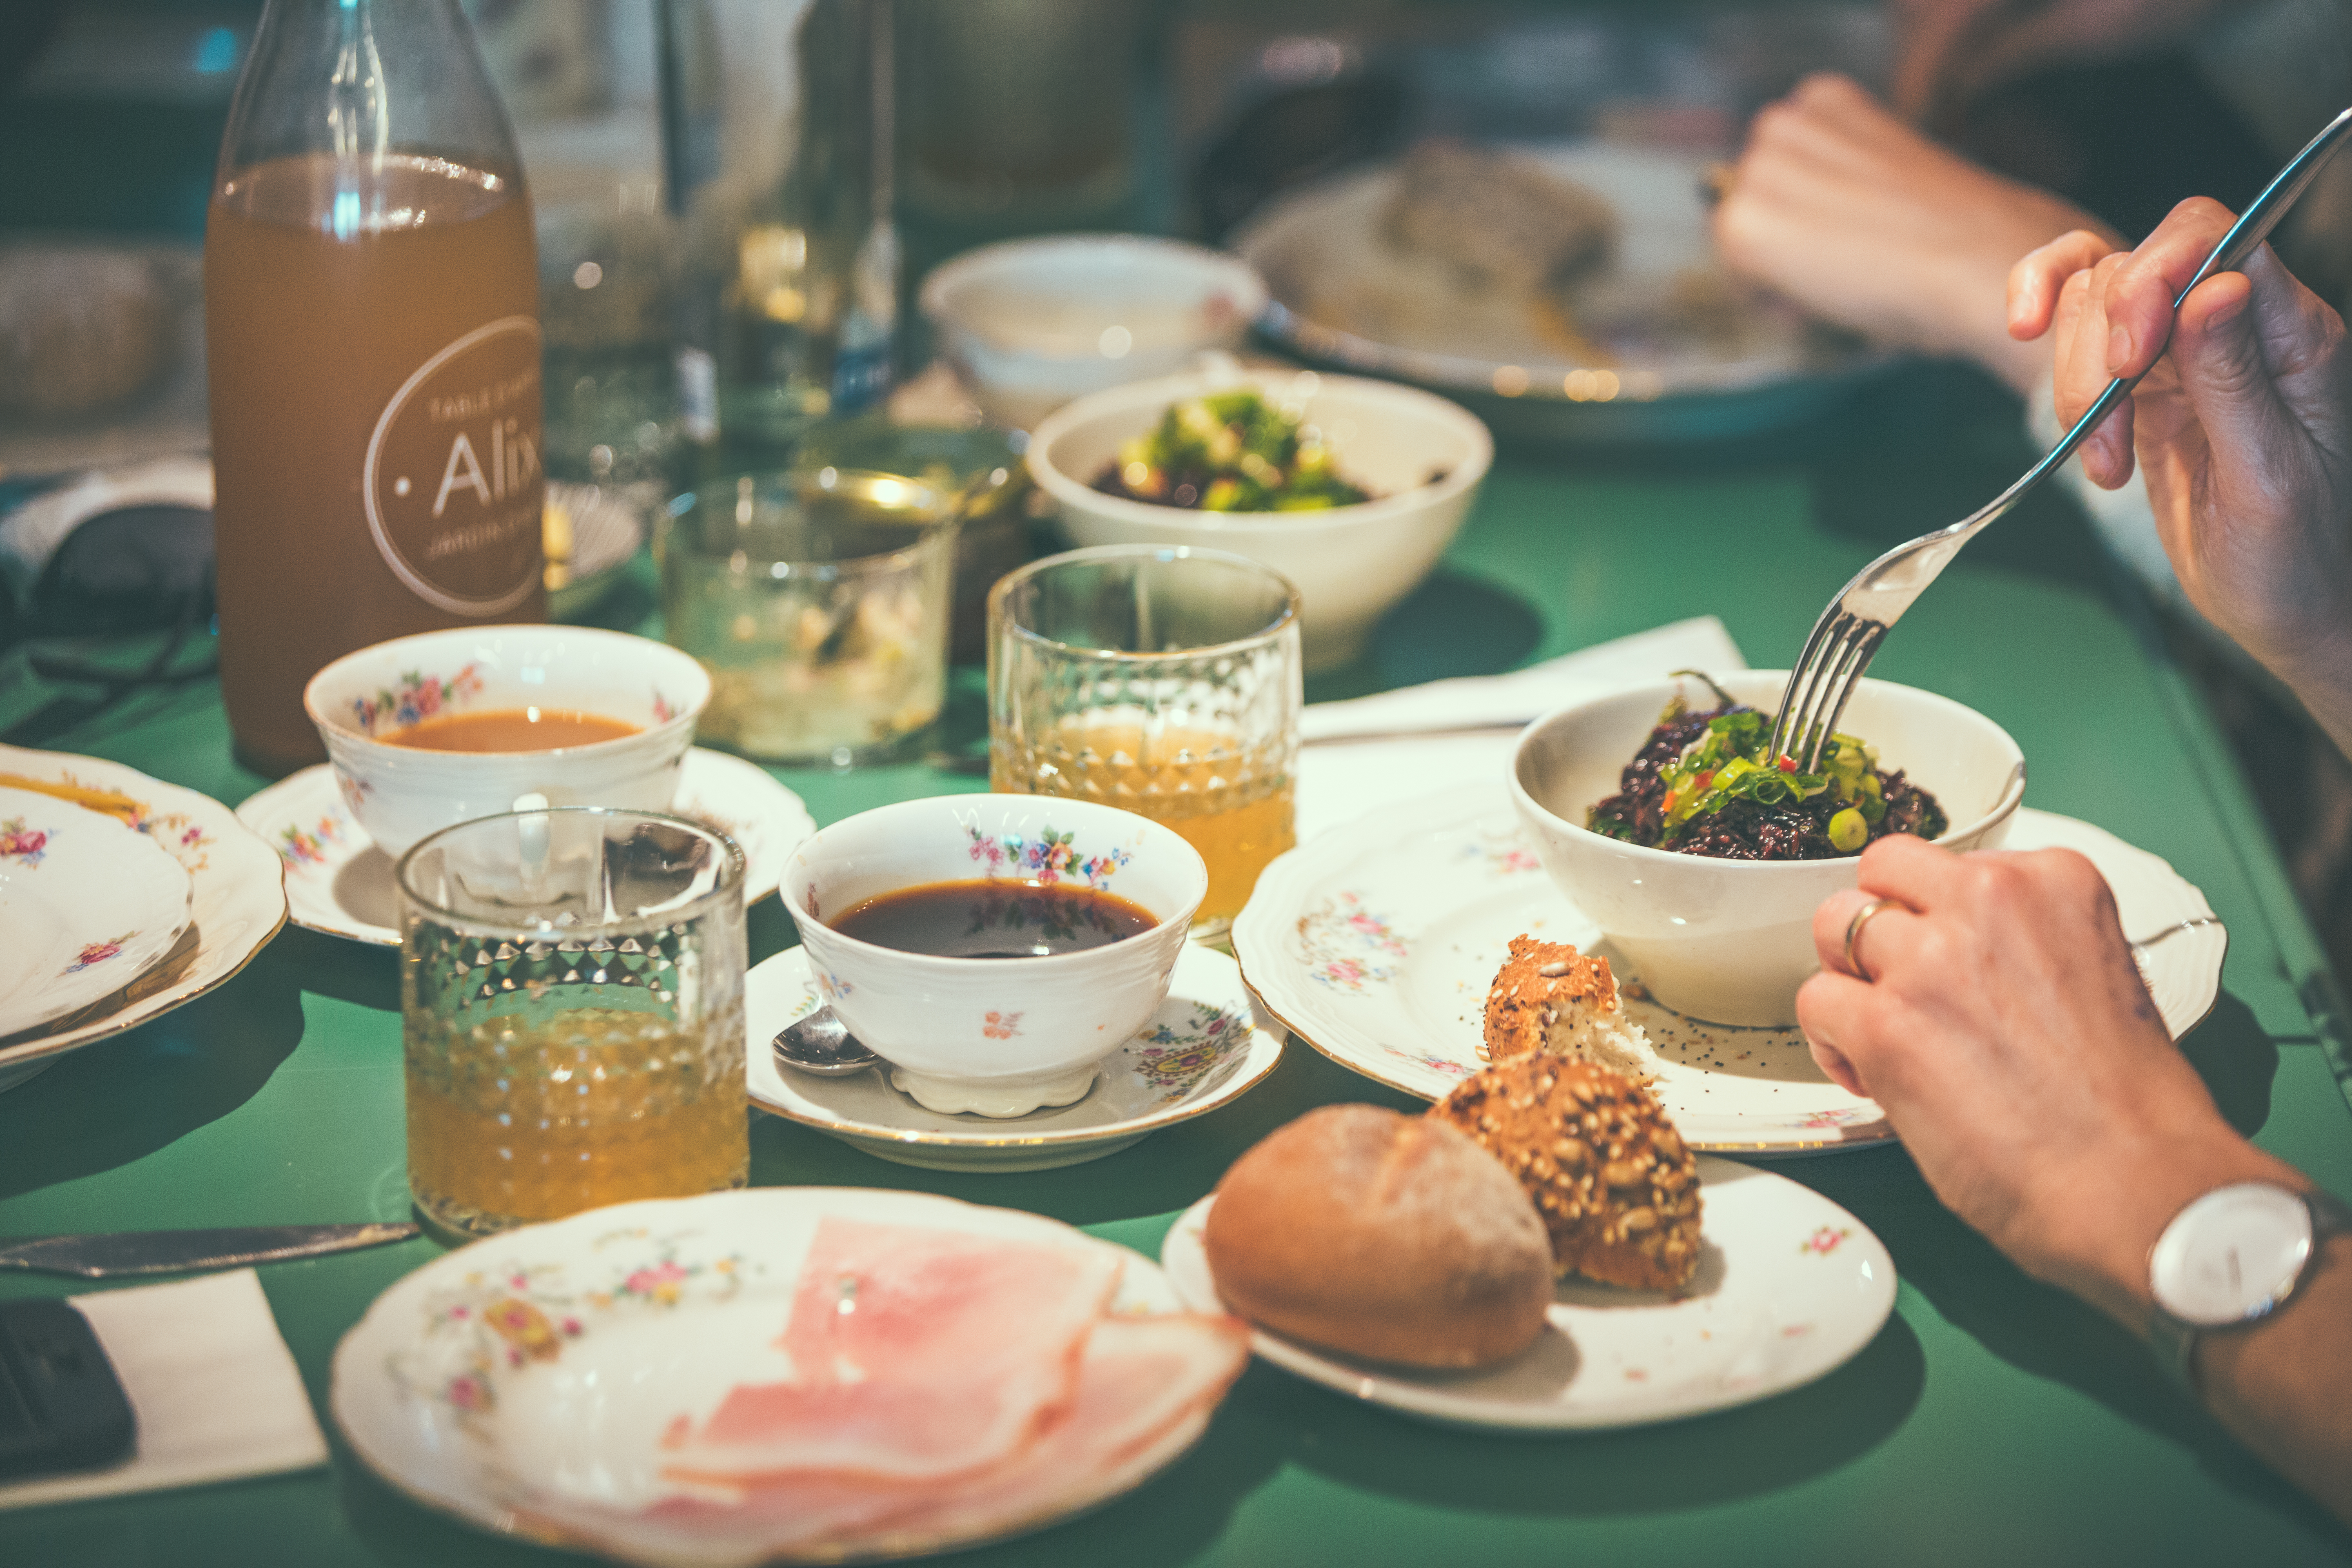 SUNDAY BRUNCH DAY - BRUNCH AND BREAKFAST IN GHENT - 20 SUPER SPOTS